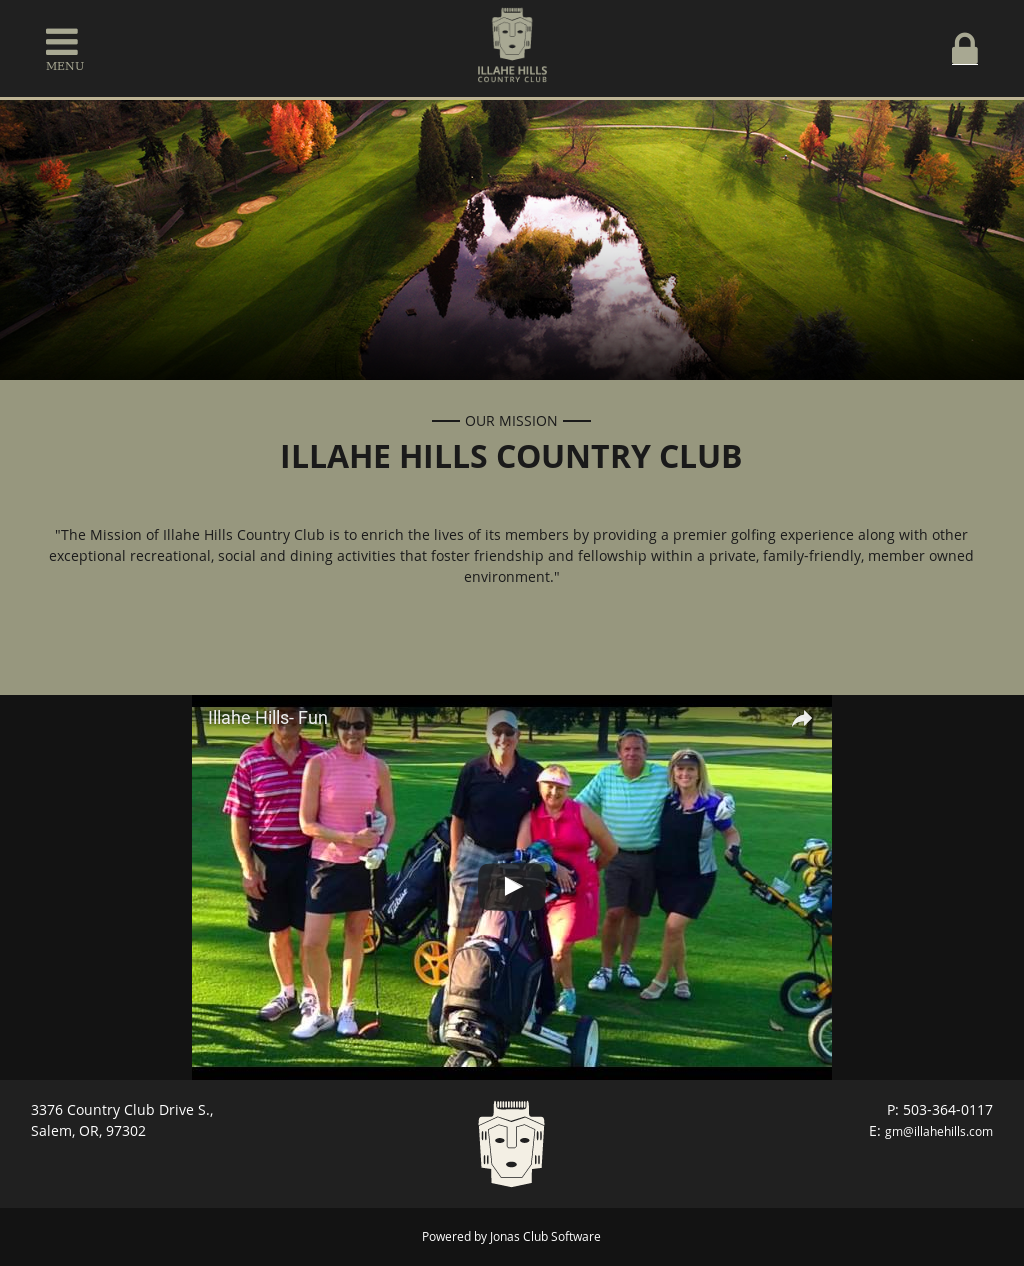 country club hills dating site Weekly dance parties, beach trips, dining-out evenings, and special holiday partiesthe triangle singles club has it all the club provides fun social activities for singles in the area.